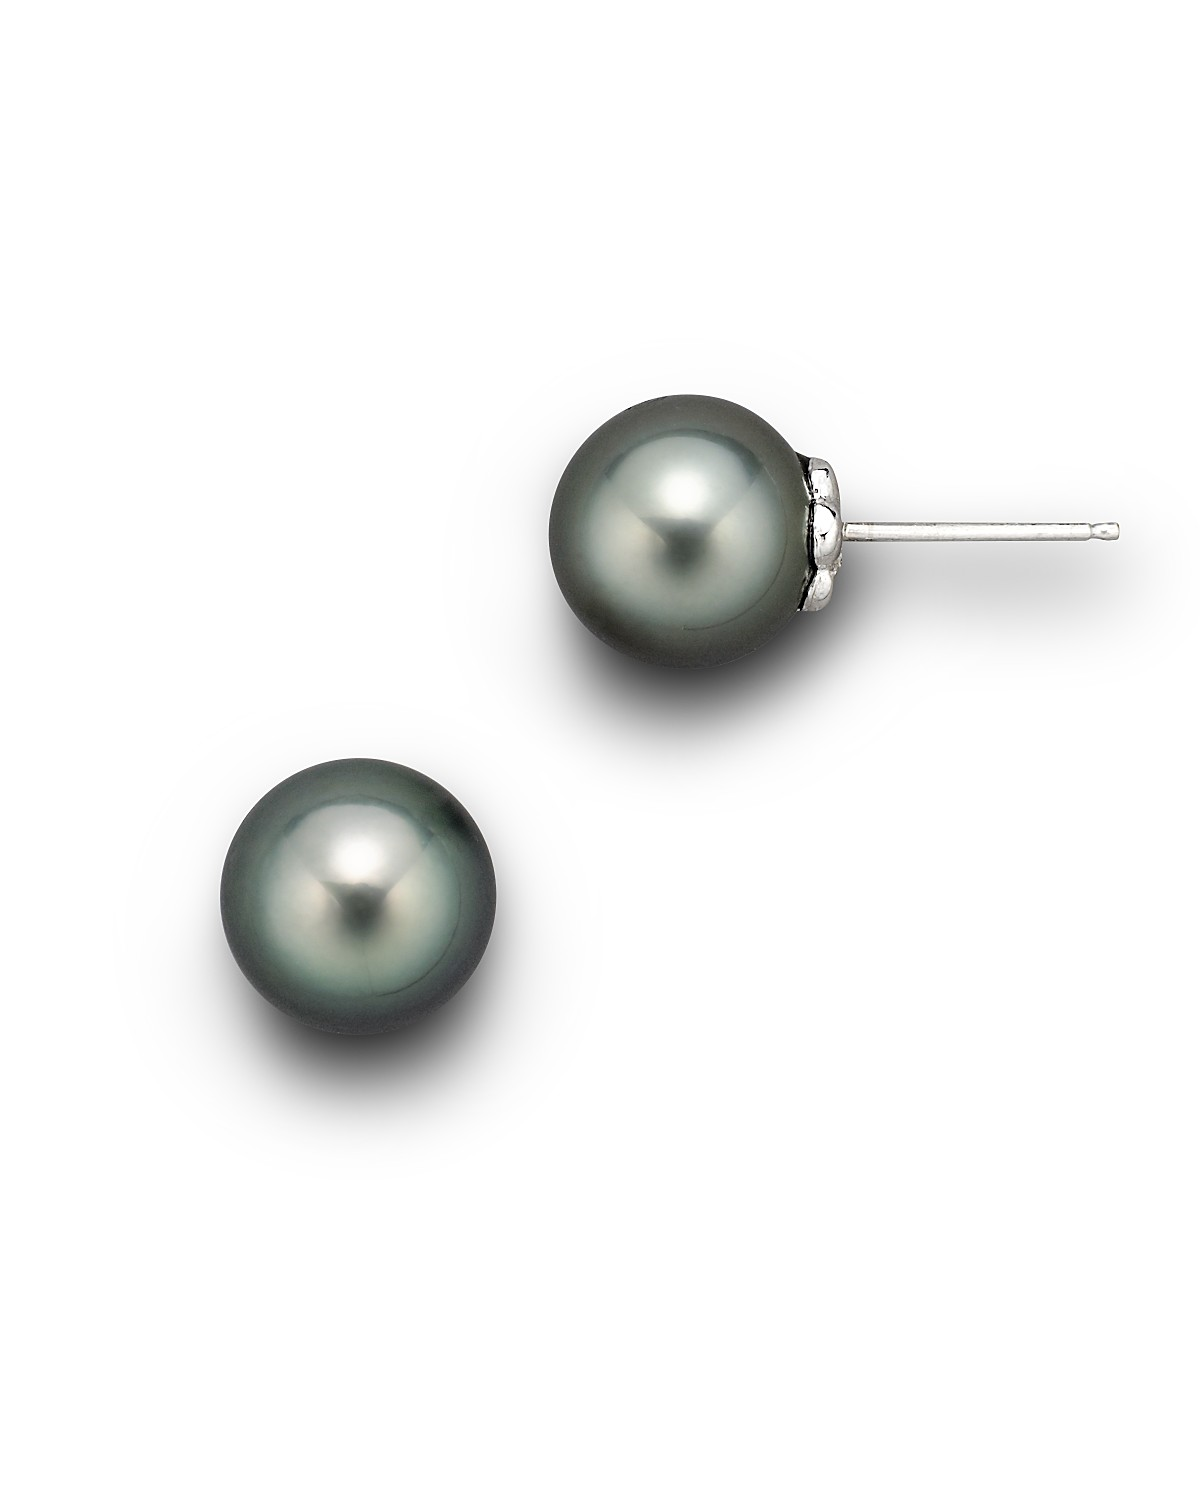 different cultured com back white pearl stud jewelry screw dp avilable gold with amazon freshwater earrings